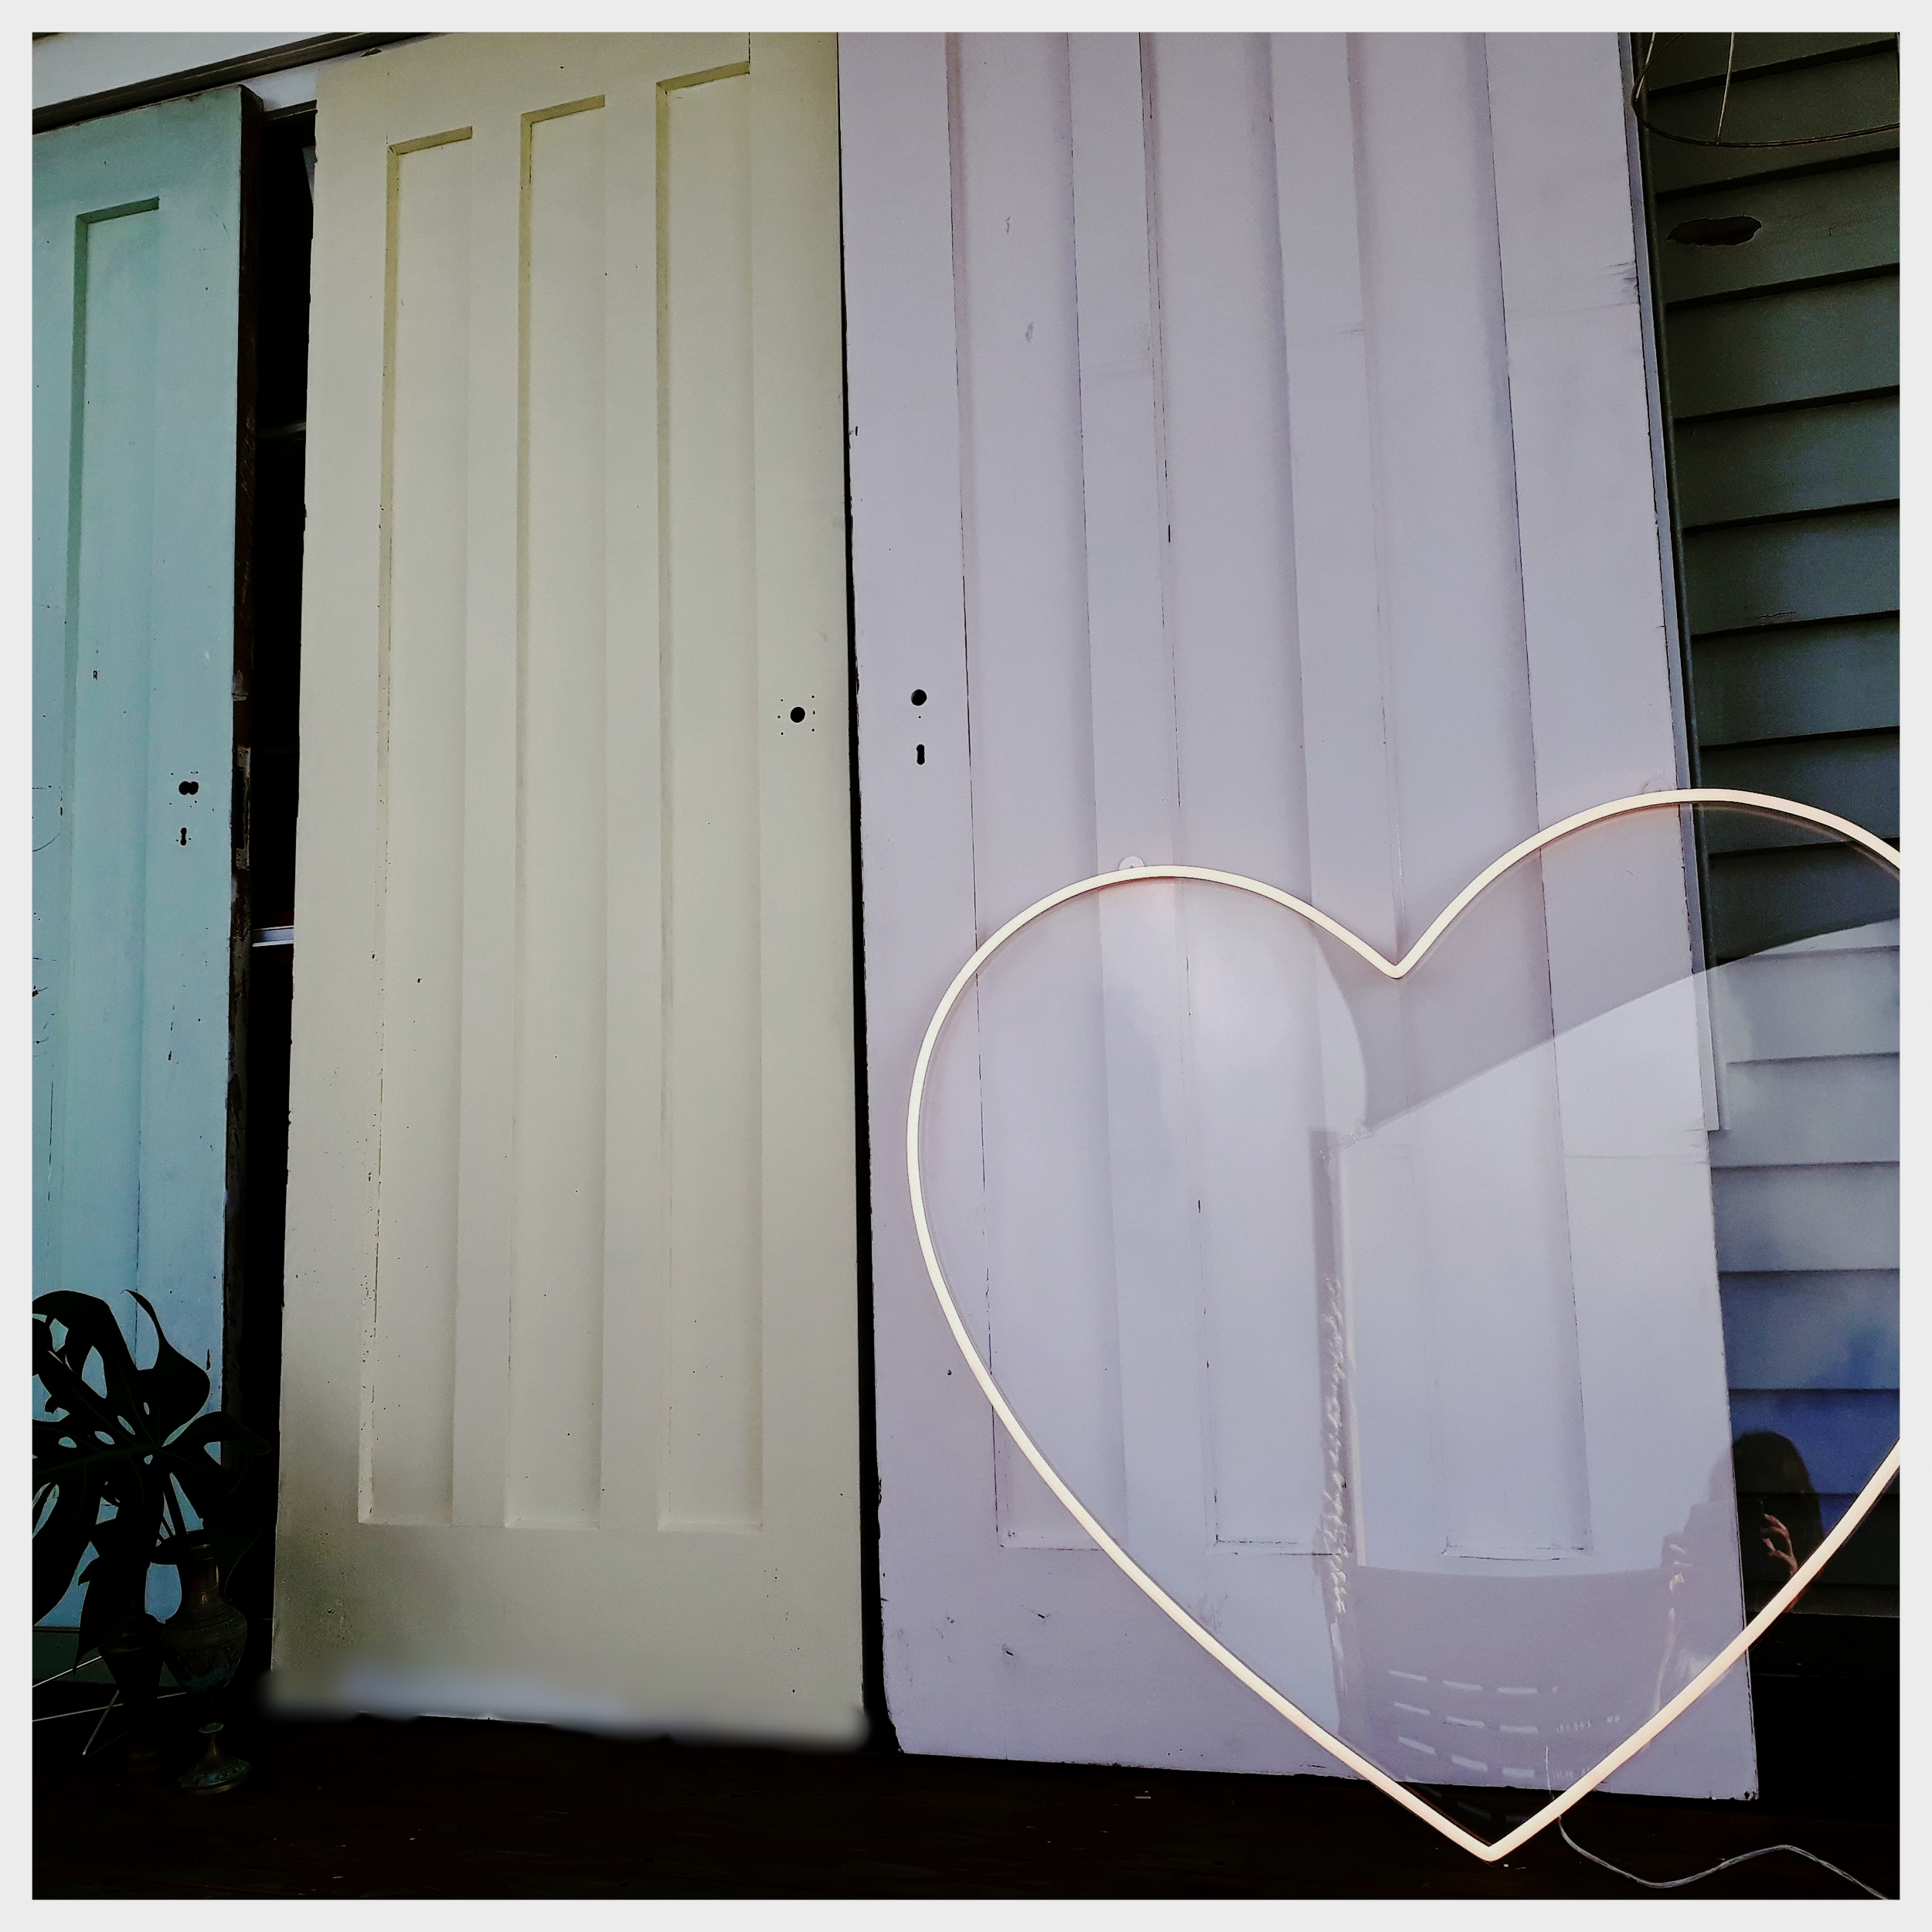 Say vintage with a heart - Vintage and Style's Neon Heart and Vintage Backdrop Doors both available for hire.